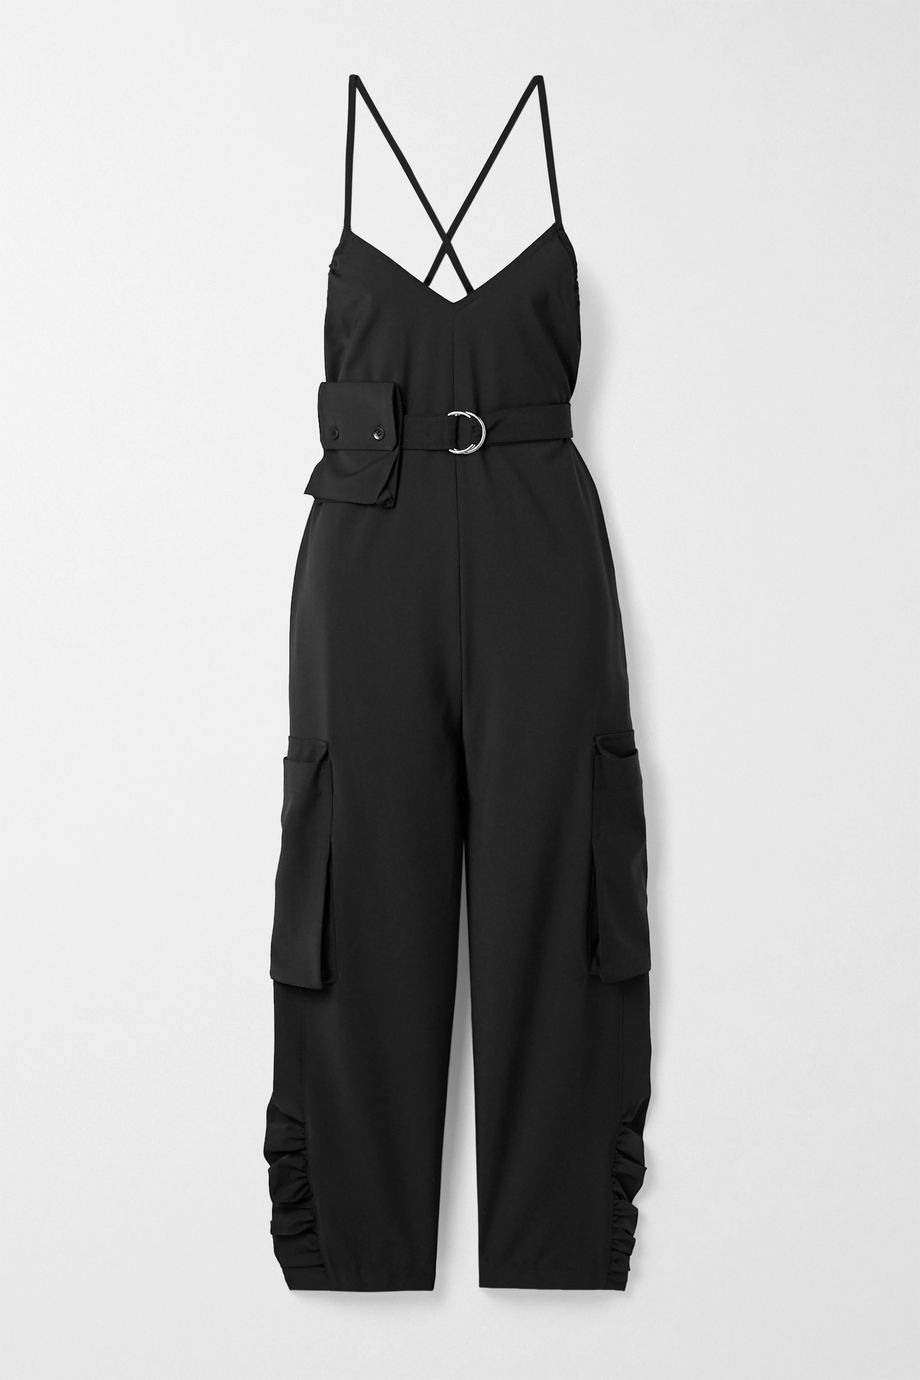 Tibi Tropical belted woven jumpsuit